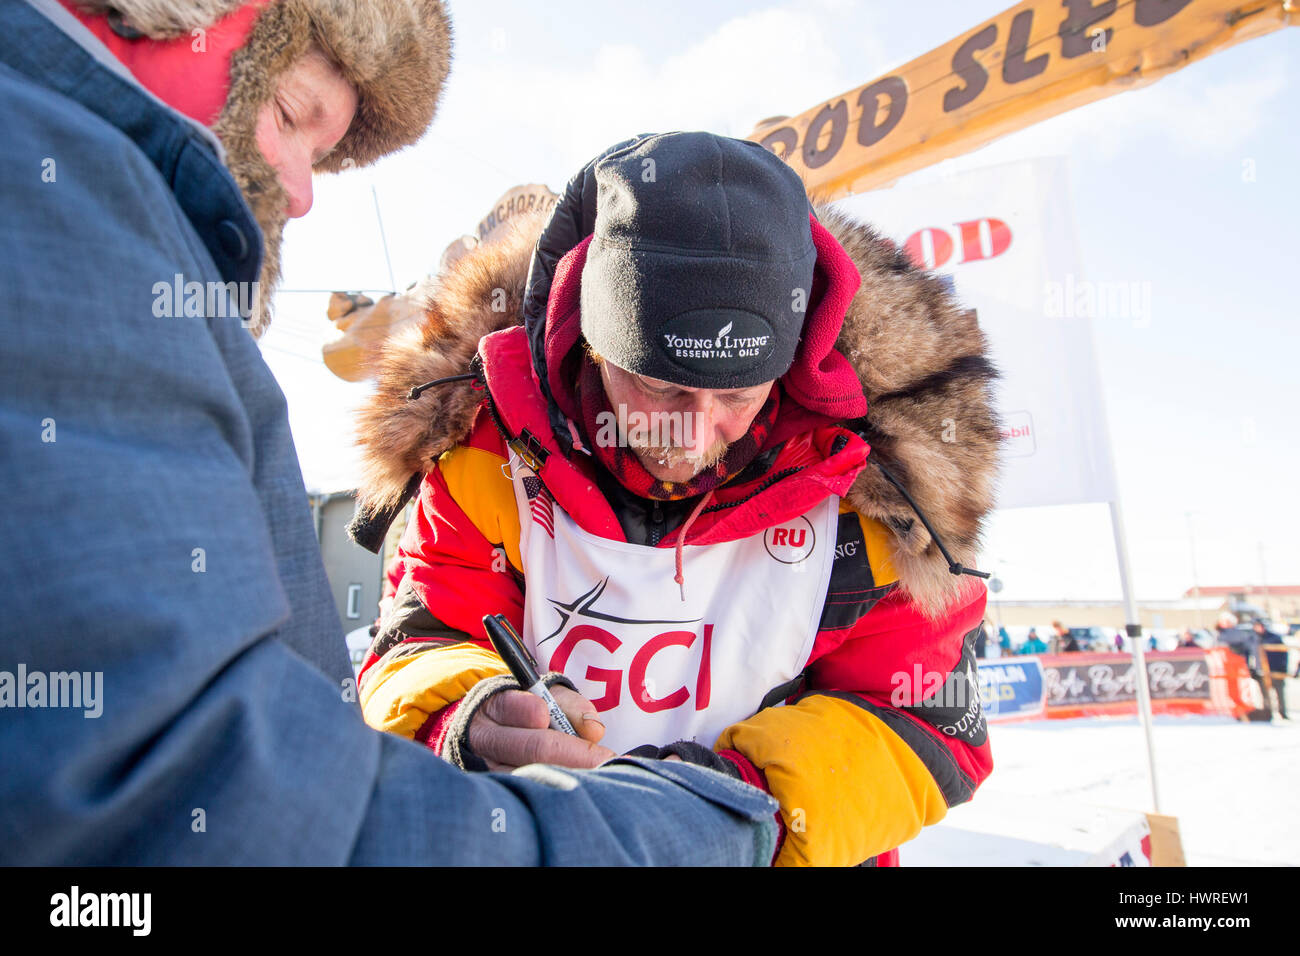 The winner of the 2017 Iditarod sled dog race arriving in Nome Alaska March 14th 2017 in a record breaking time. - Stock Image